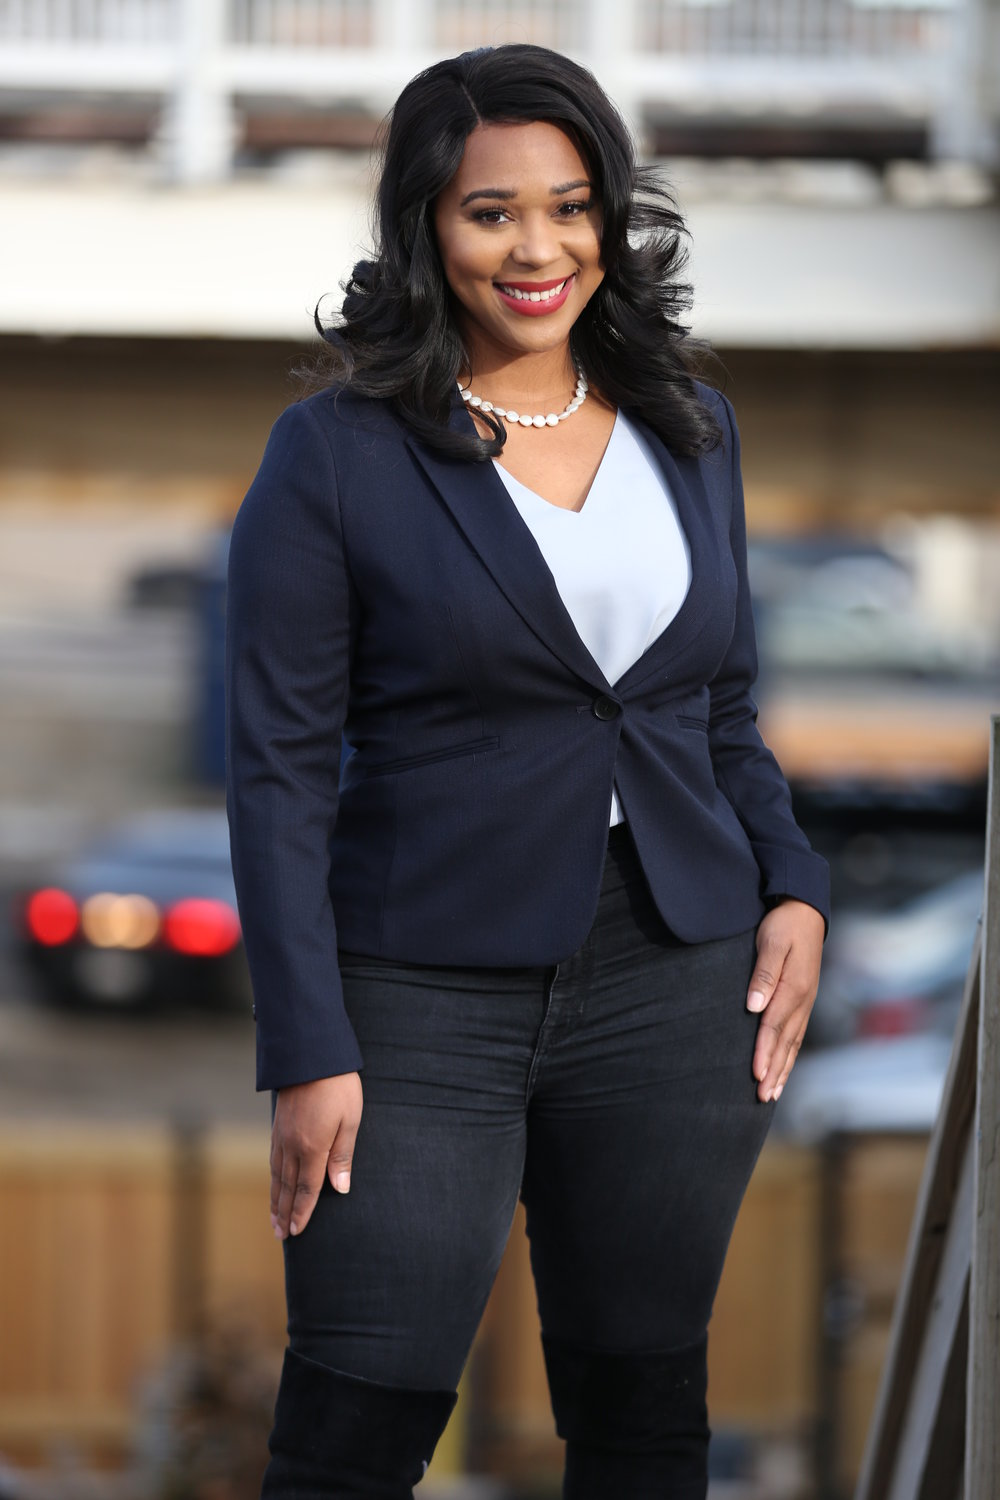 Meet Alexandria - Alexandria is a Chicago native and an alumnus of the Chicago Public School system.Her professional career is rich with experience in healthcare advocacy and policymaking.Alexandria has made her home in the 3rd Ward because she believes it can be the gateway to modern Chicago.READ MORE